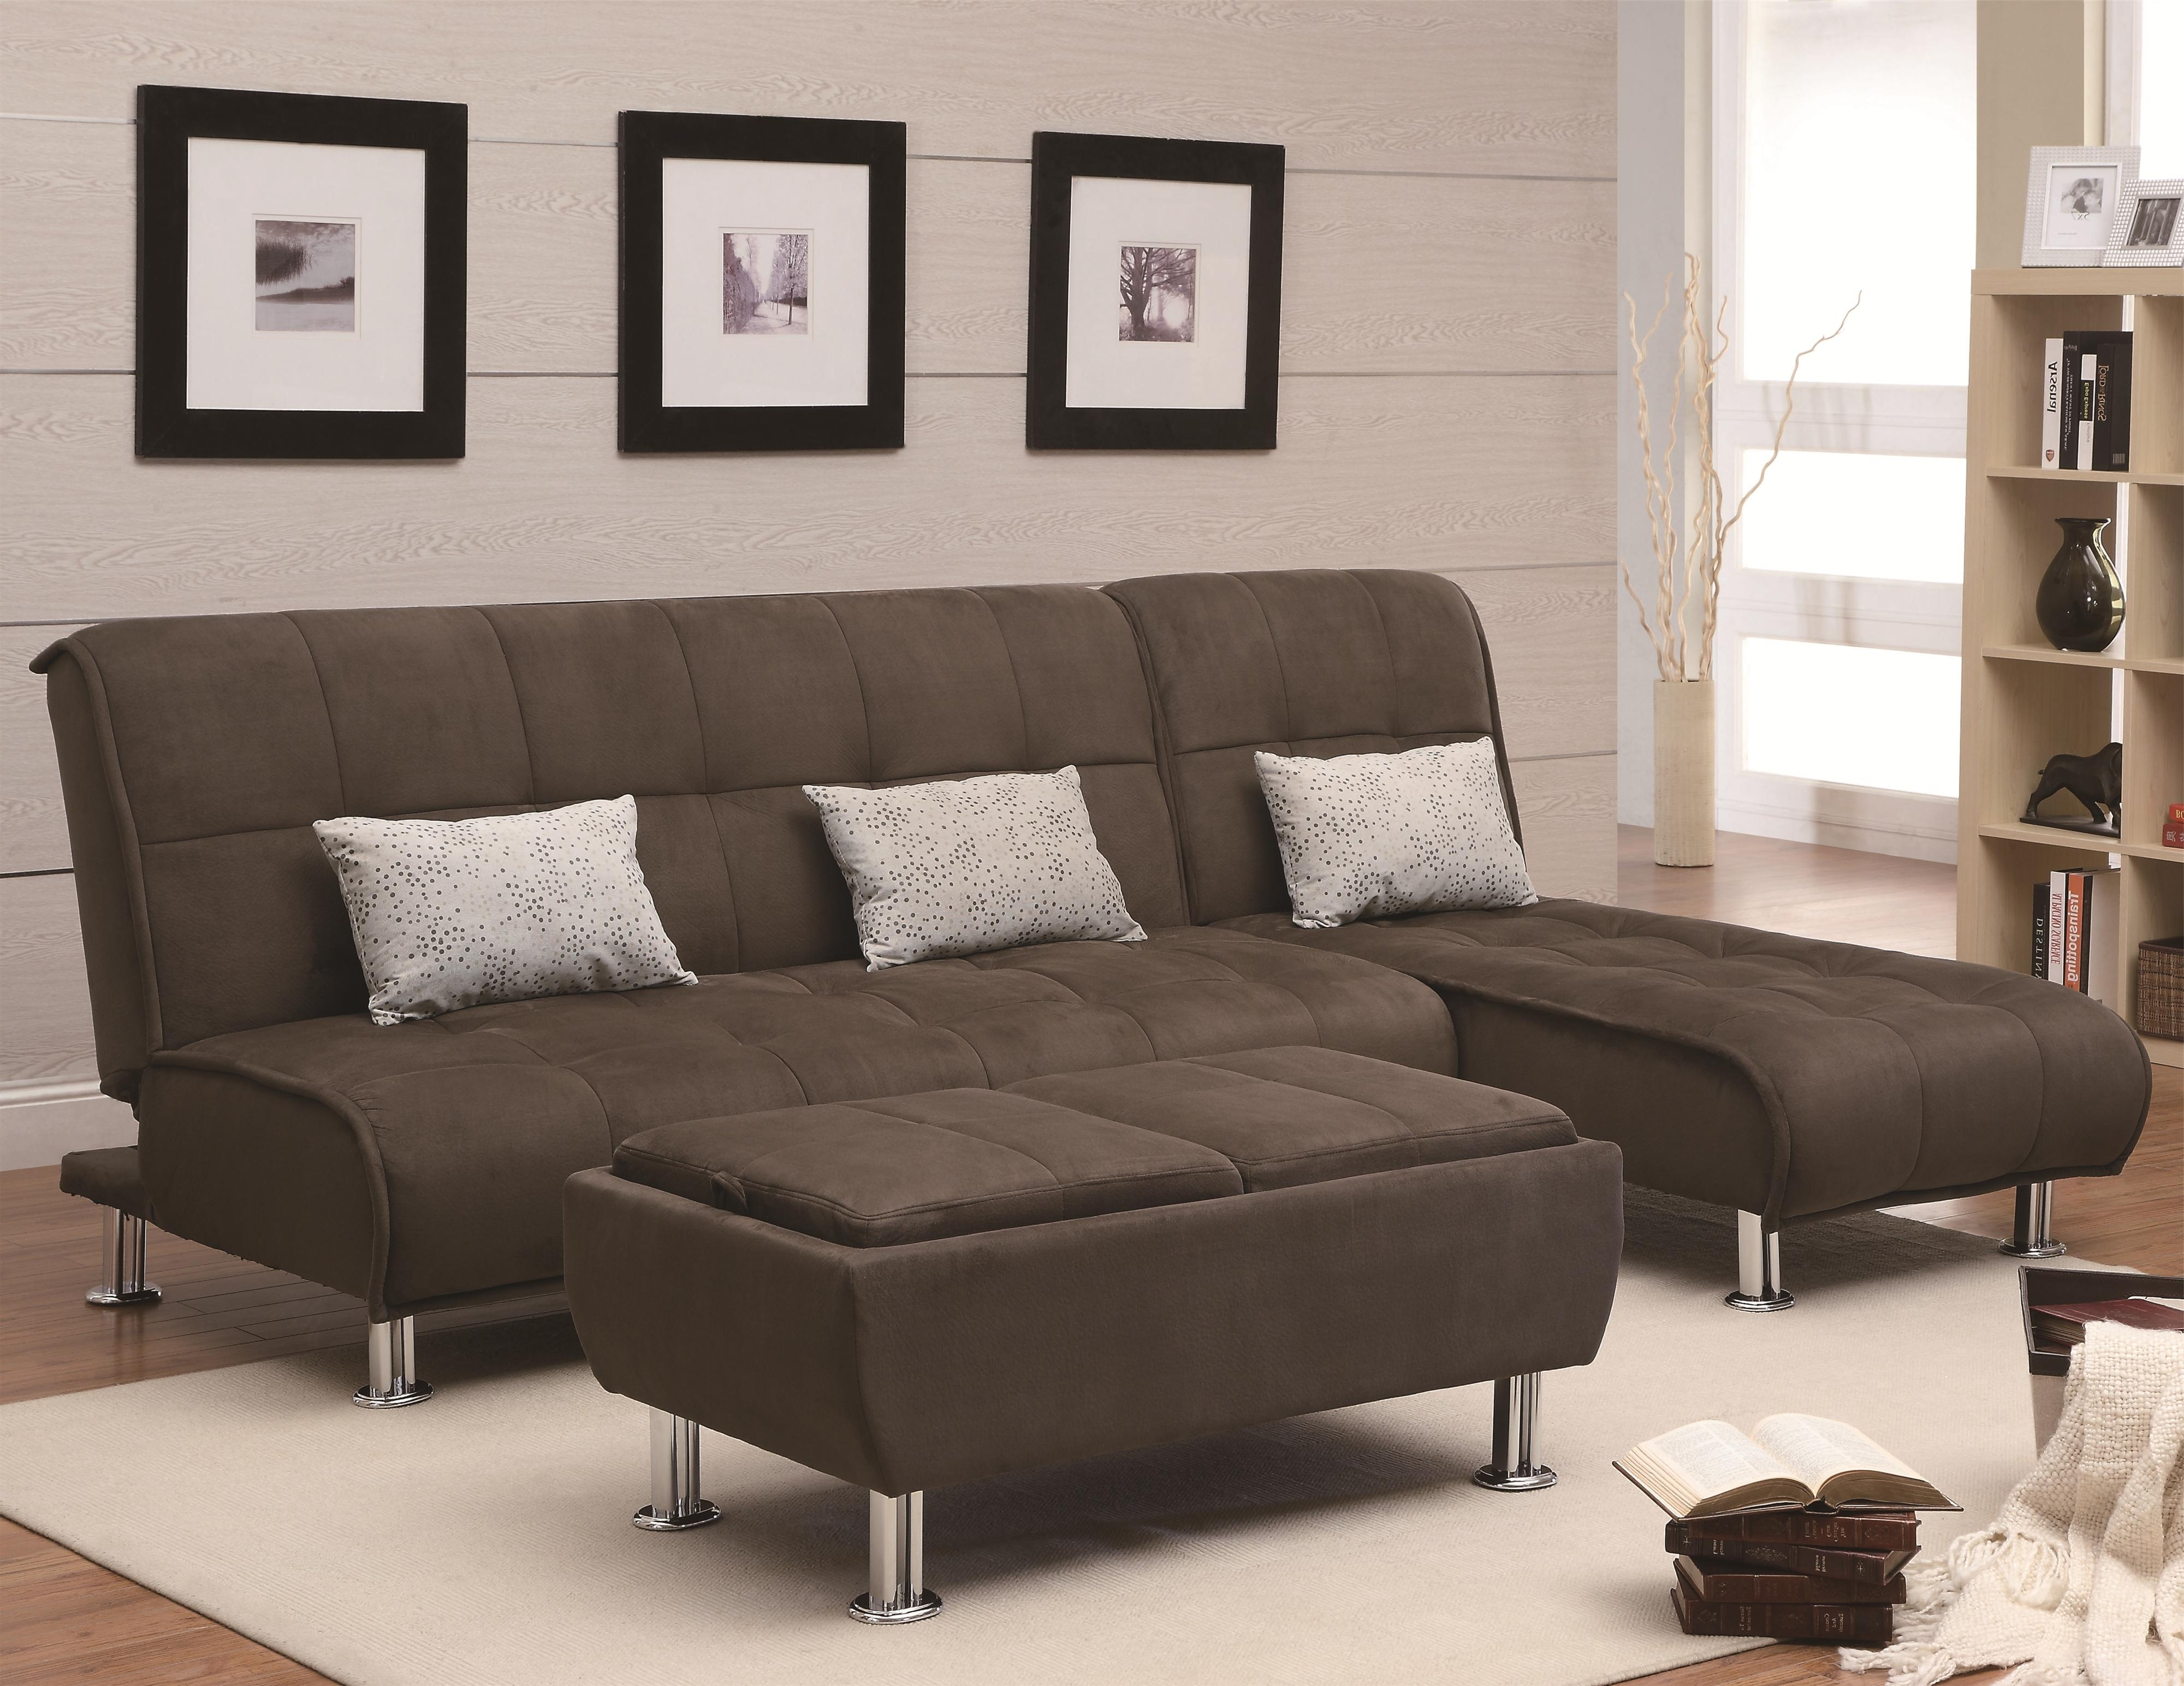 Newest Futon Sofa Home Decor Furniture Modern Tufted Jamaica Convertible With Jamaica Sectional Sofas (View 14 of 20)